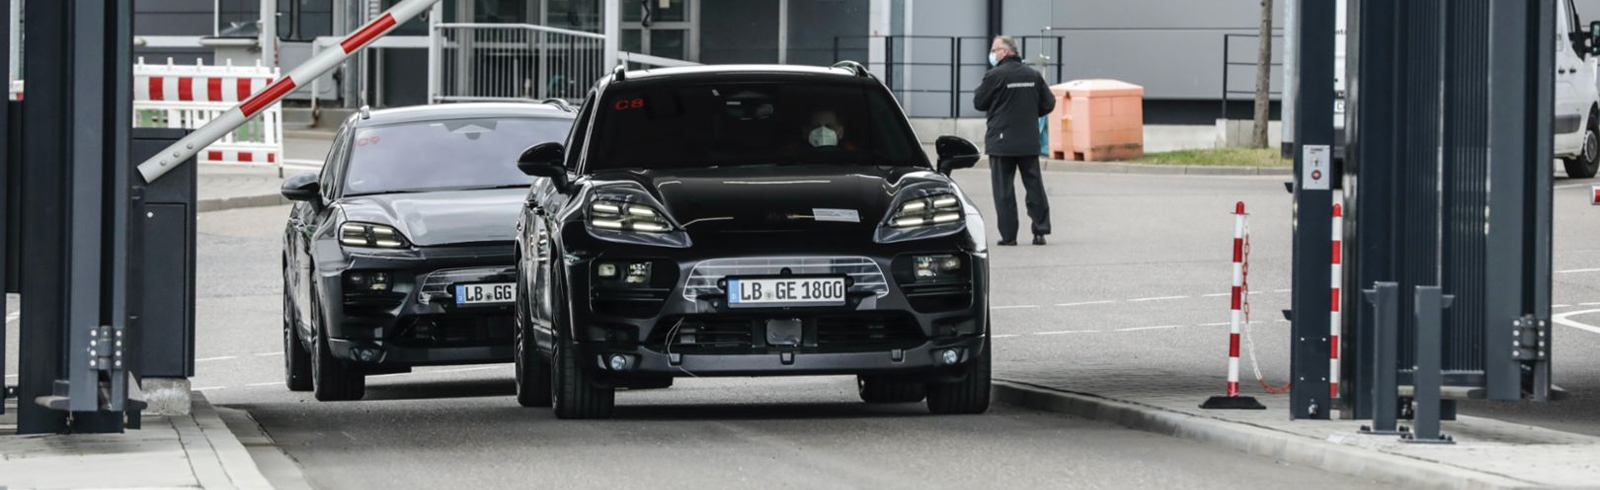 The all-electric Porsche Macan prototypes enter real-world testing stage